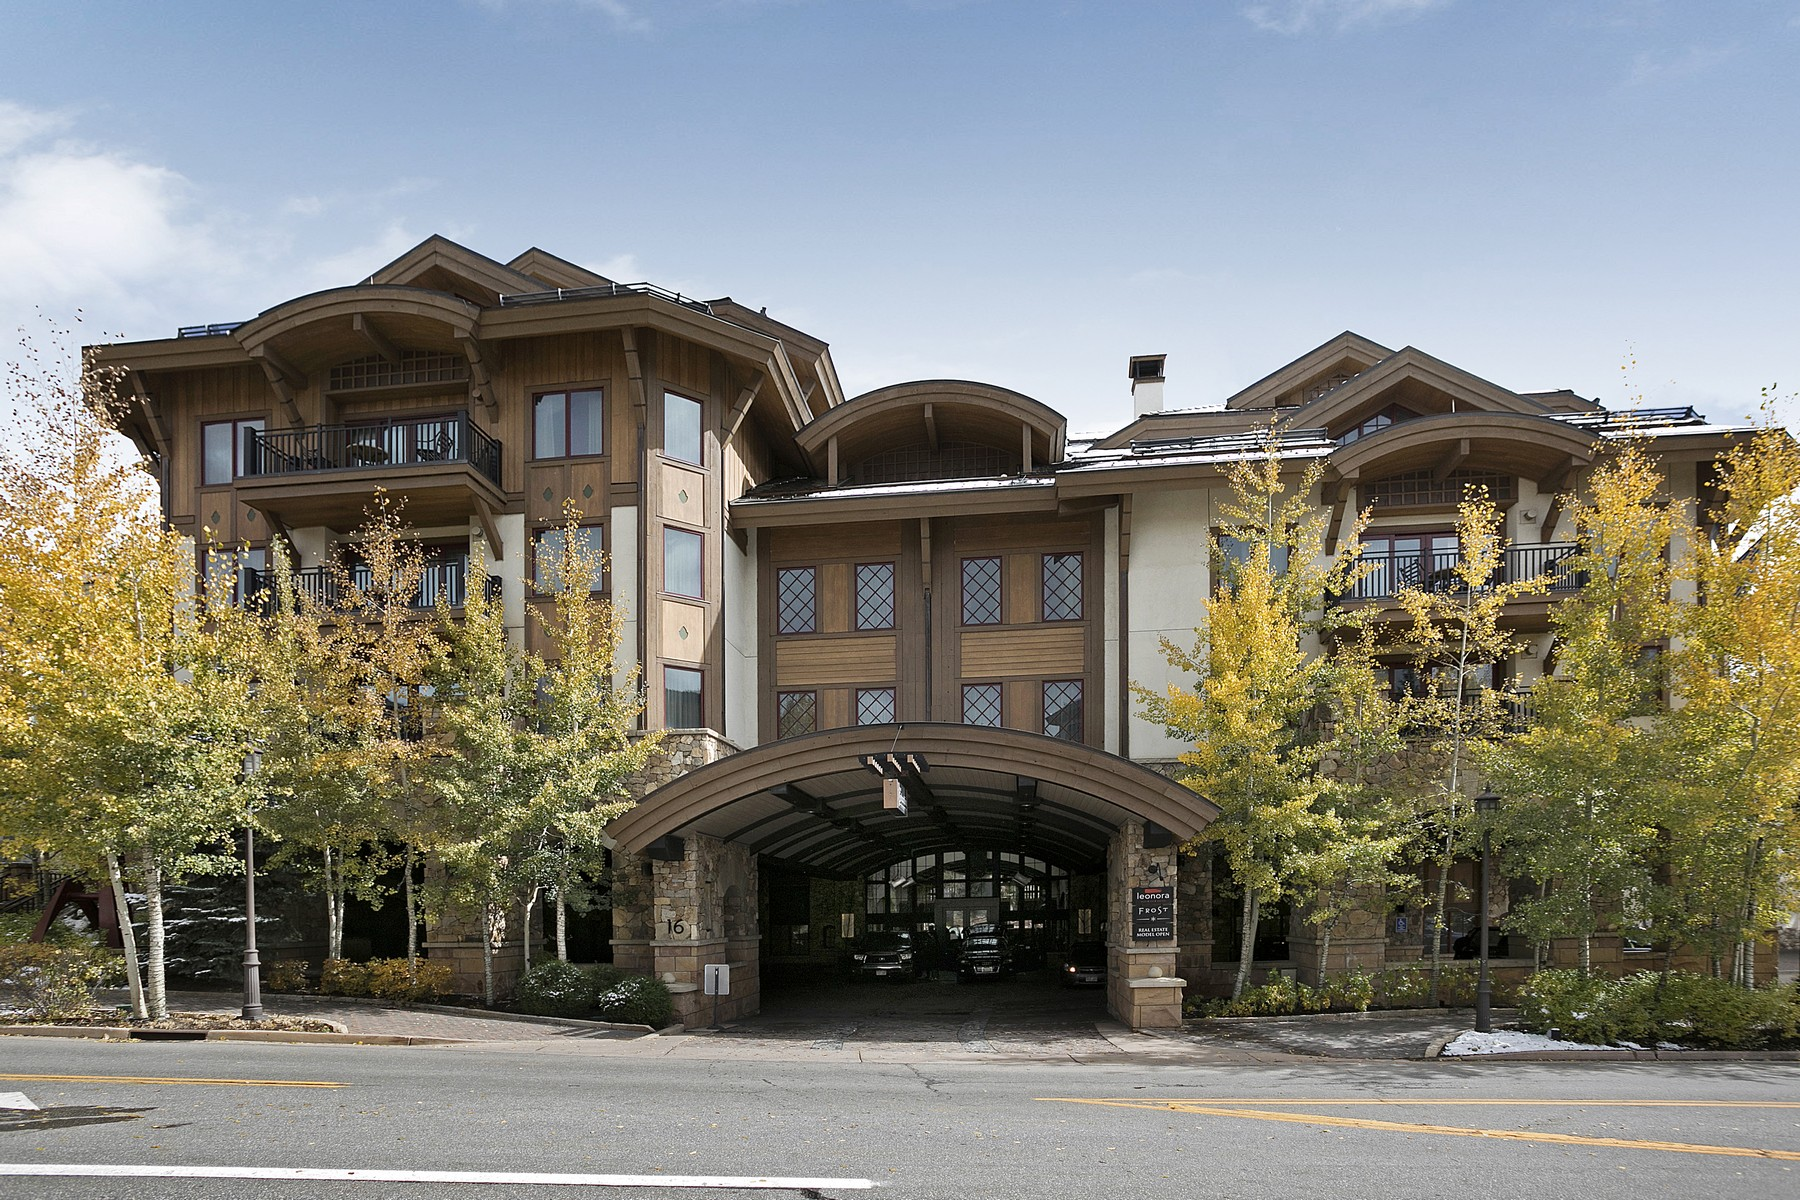 Fractional Ownership for Active at Effortless Ownership In The Heart of Vail Village, Weeks 5, 6, 30 & 31 16 Vail Rd #407 Vail, Colorado 81657 United States